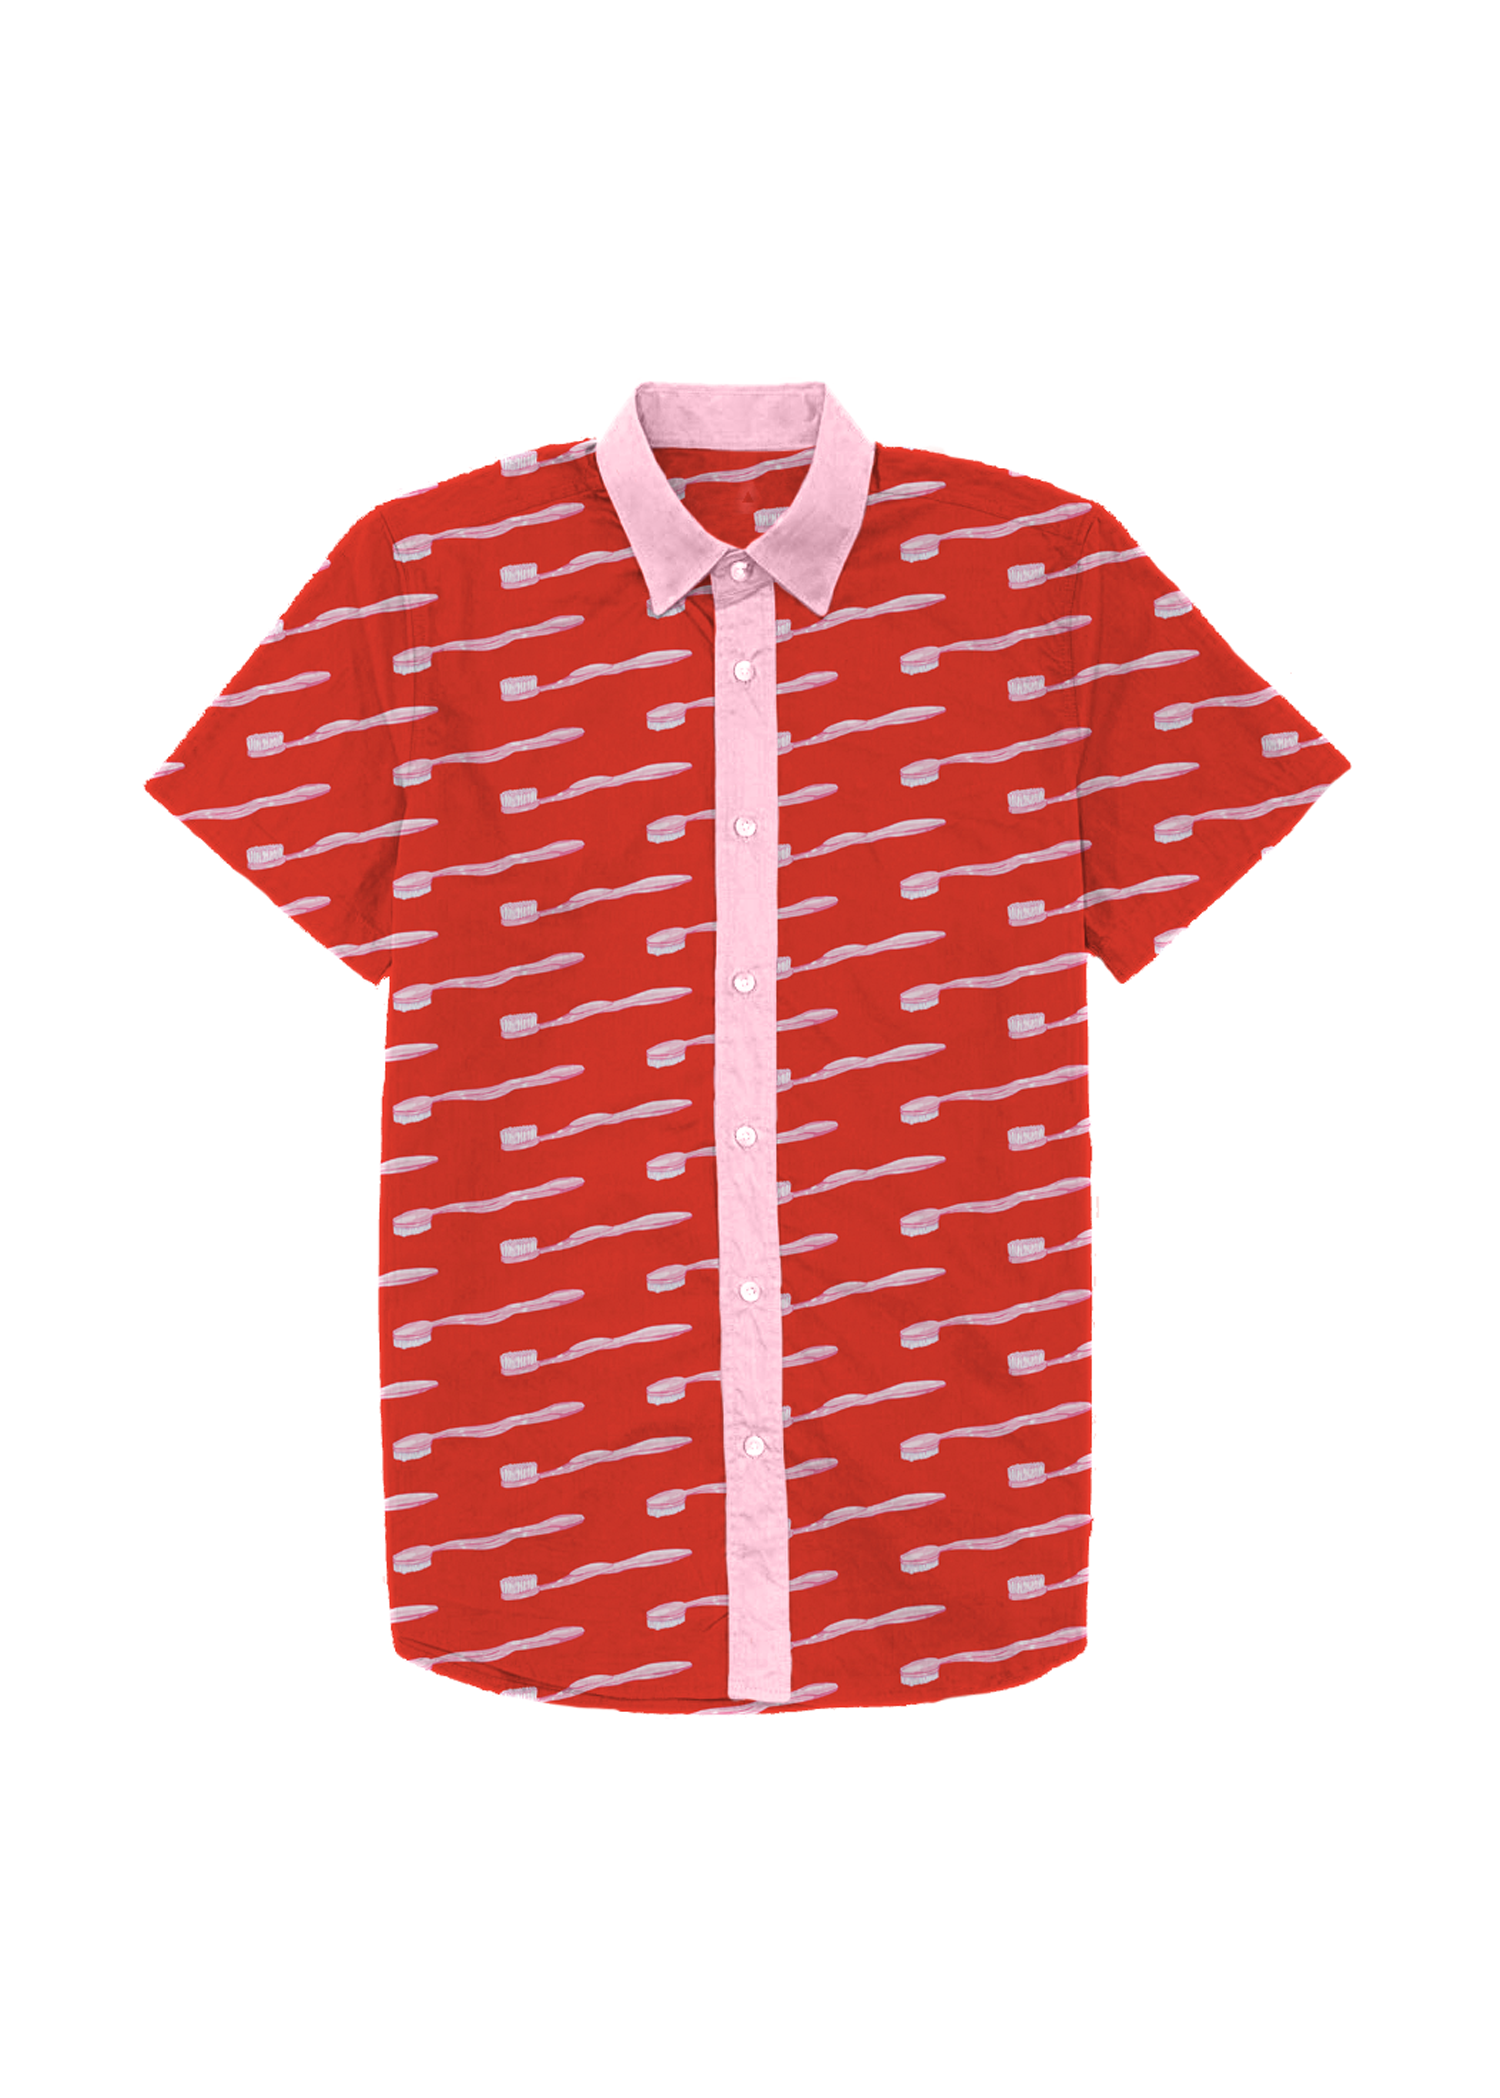 toothbrush dad shirt in red & pink